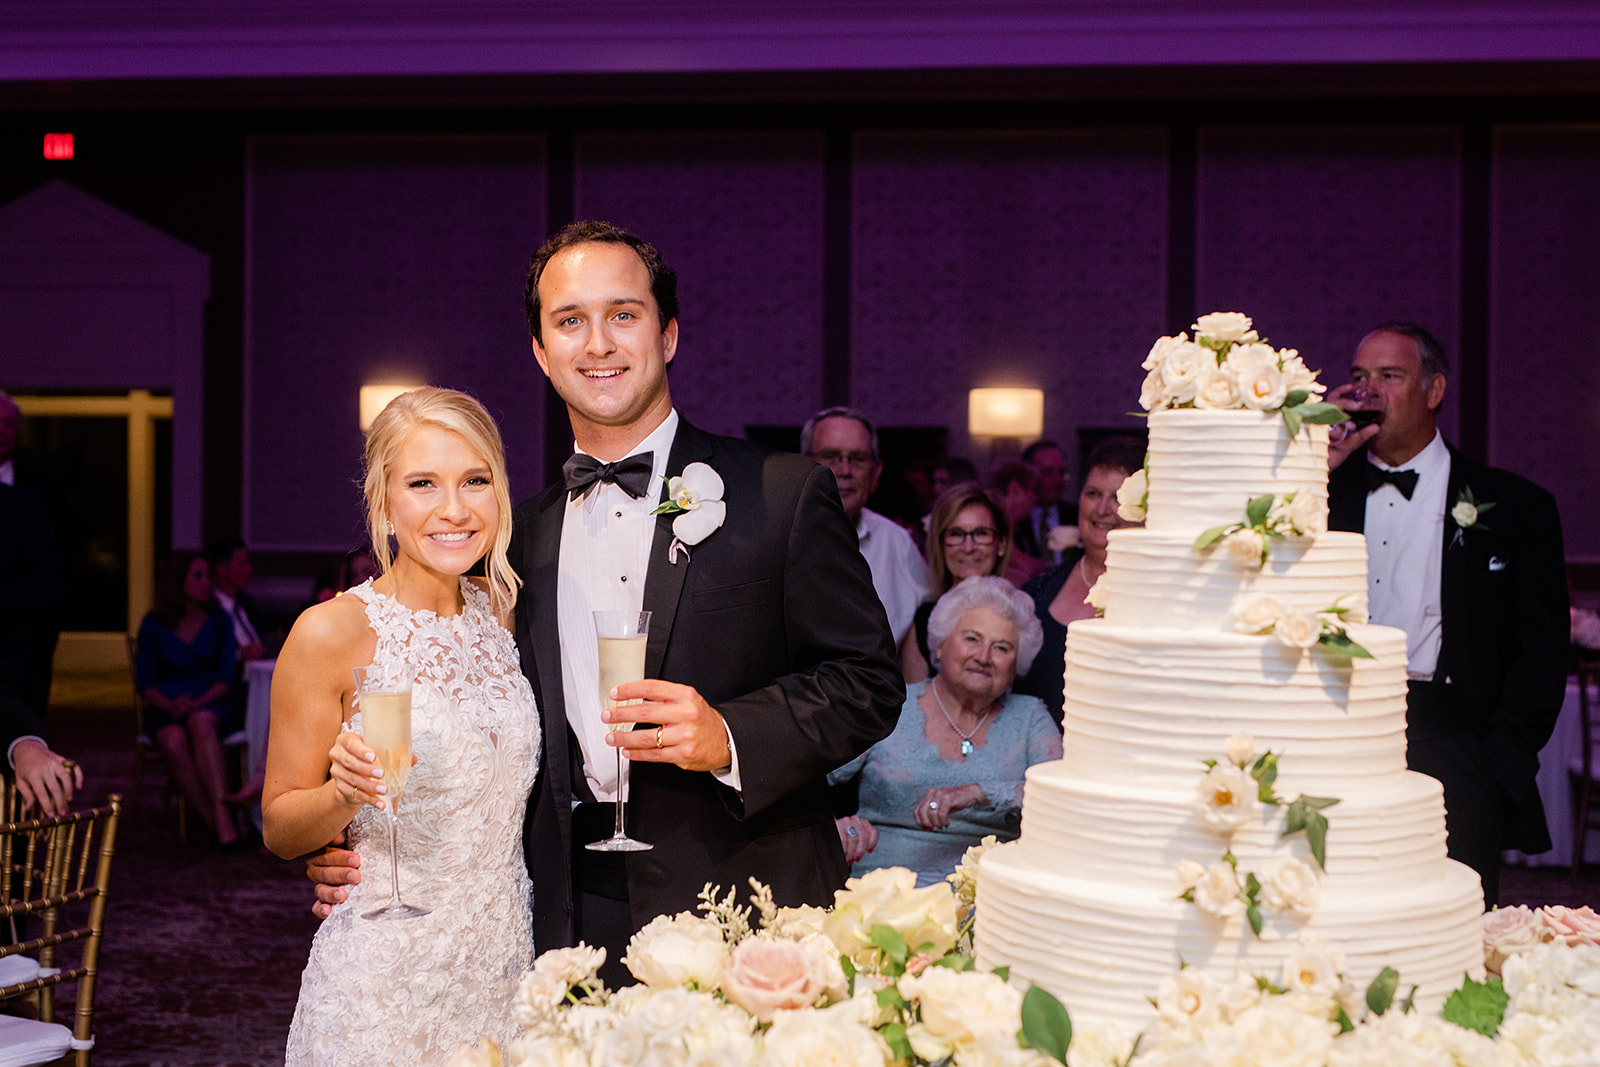 Blush-Black-Tie-Wedding-at-the-Grand-Hotel-in-Point-Clear-Alabama-Anna-Filly-Photography-Cross-Wedding-Reception-74.jpg